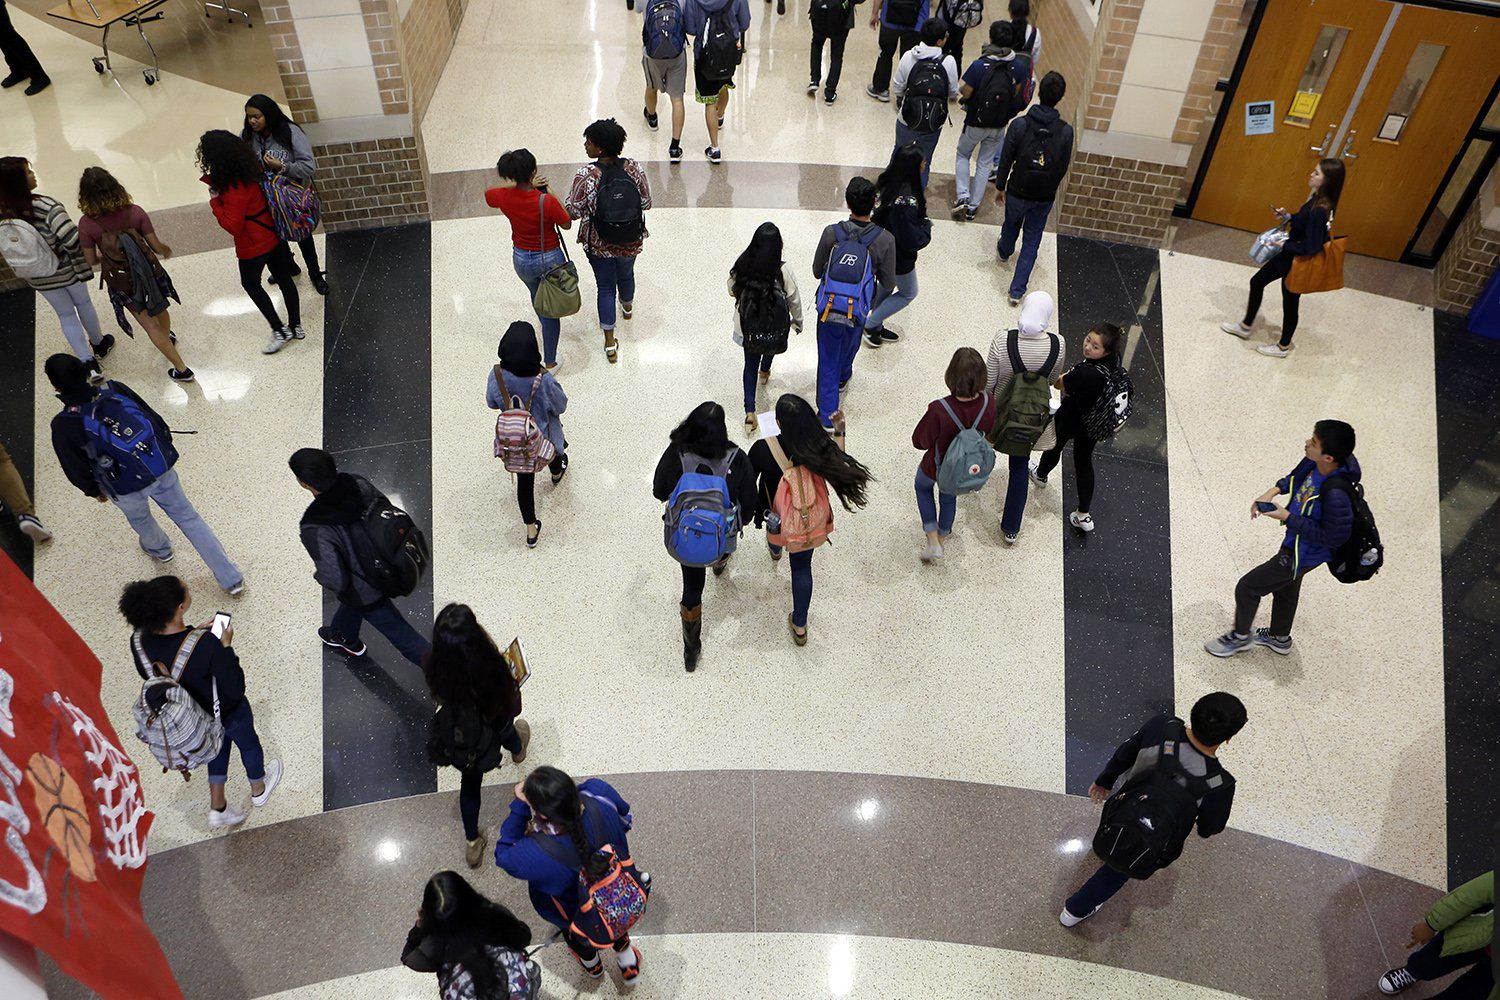 Students crowd the hallway after the last bell rings at Liberty High School in Frisco.